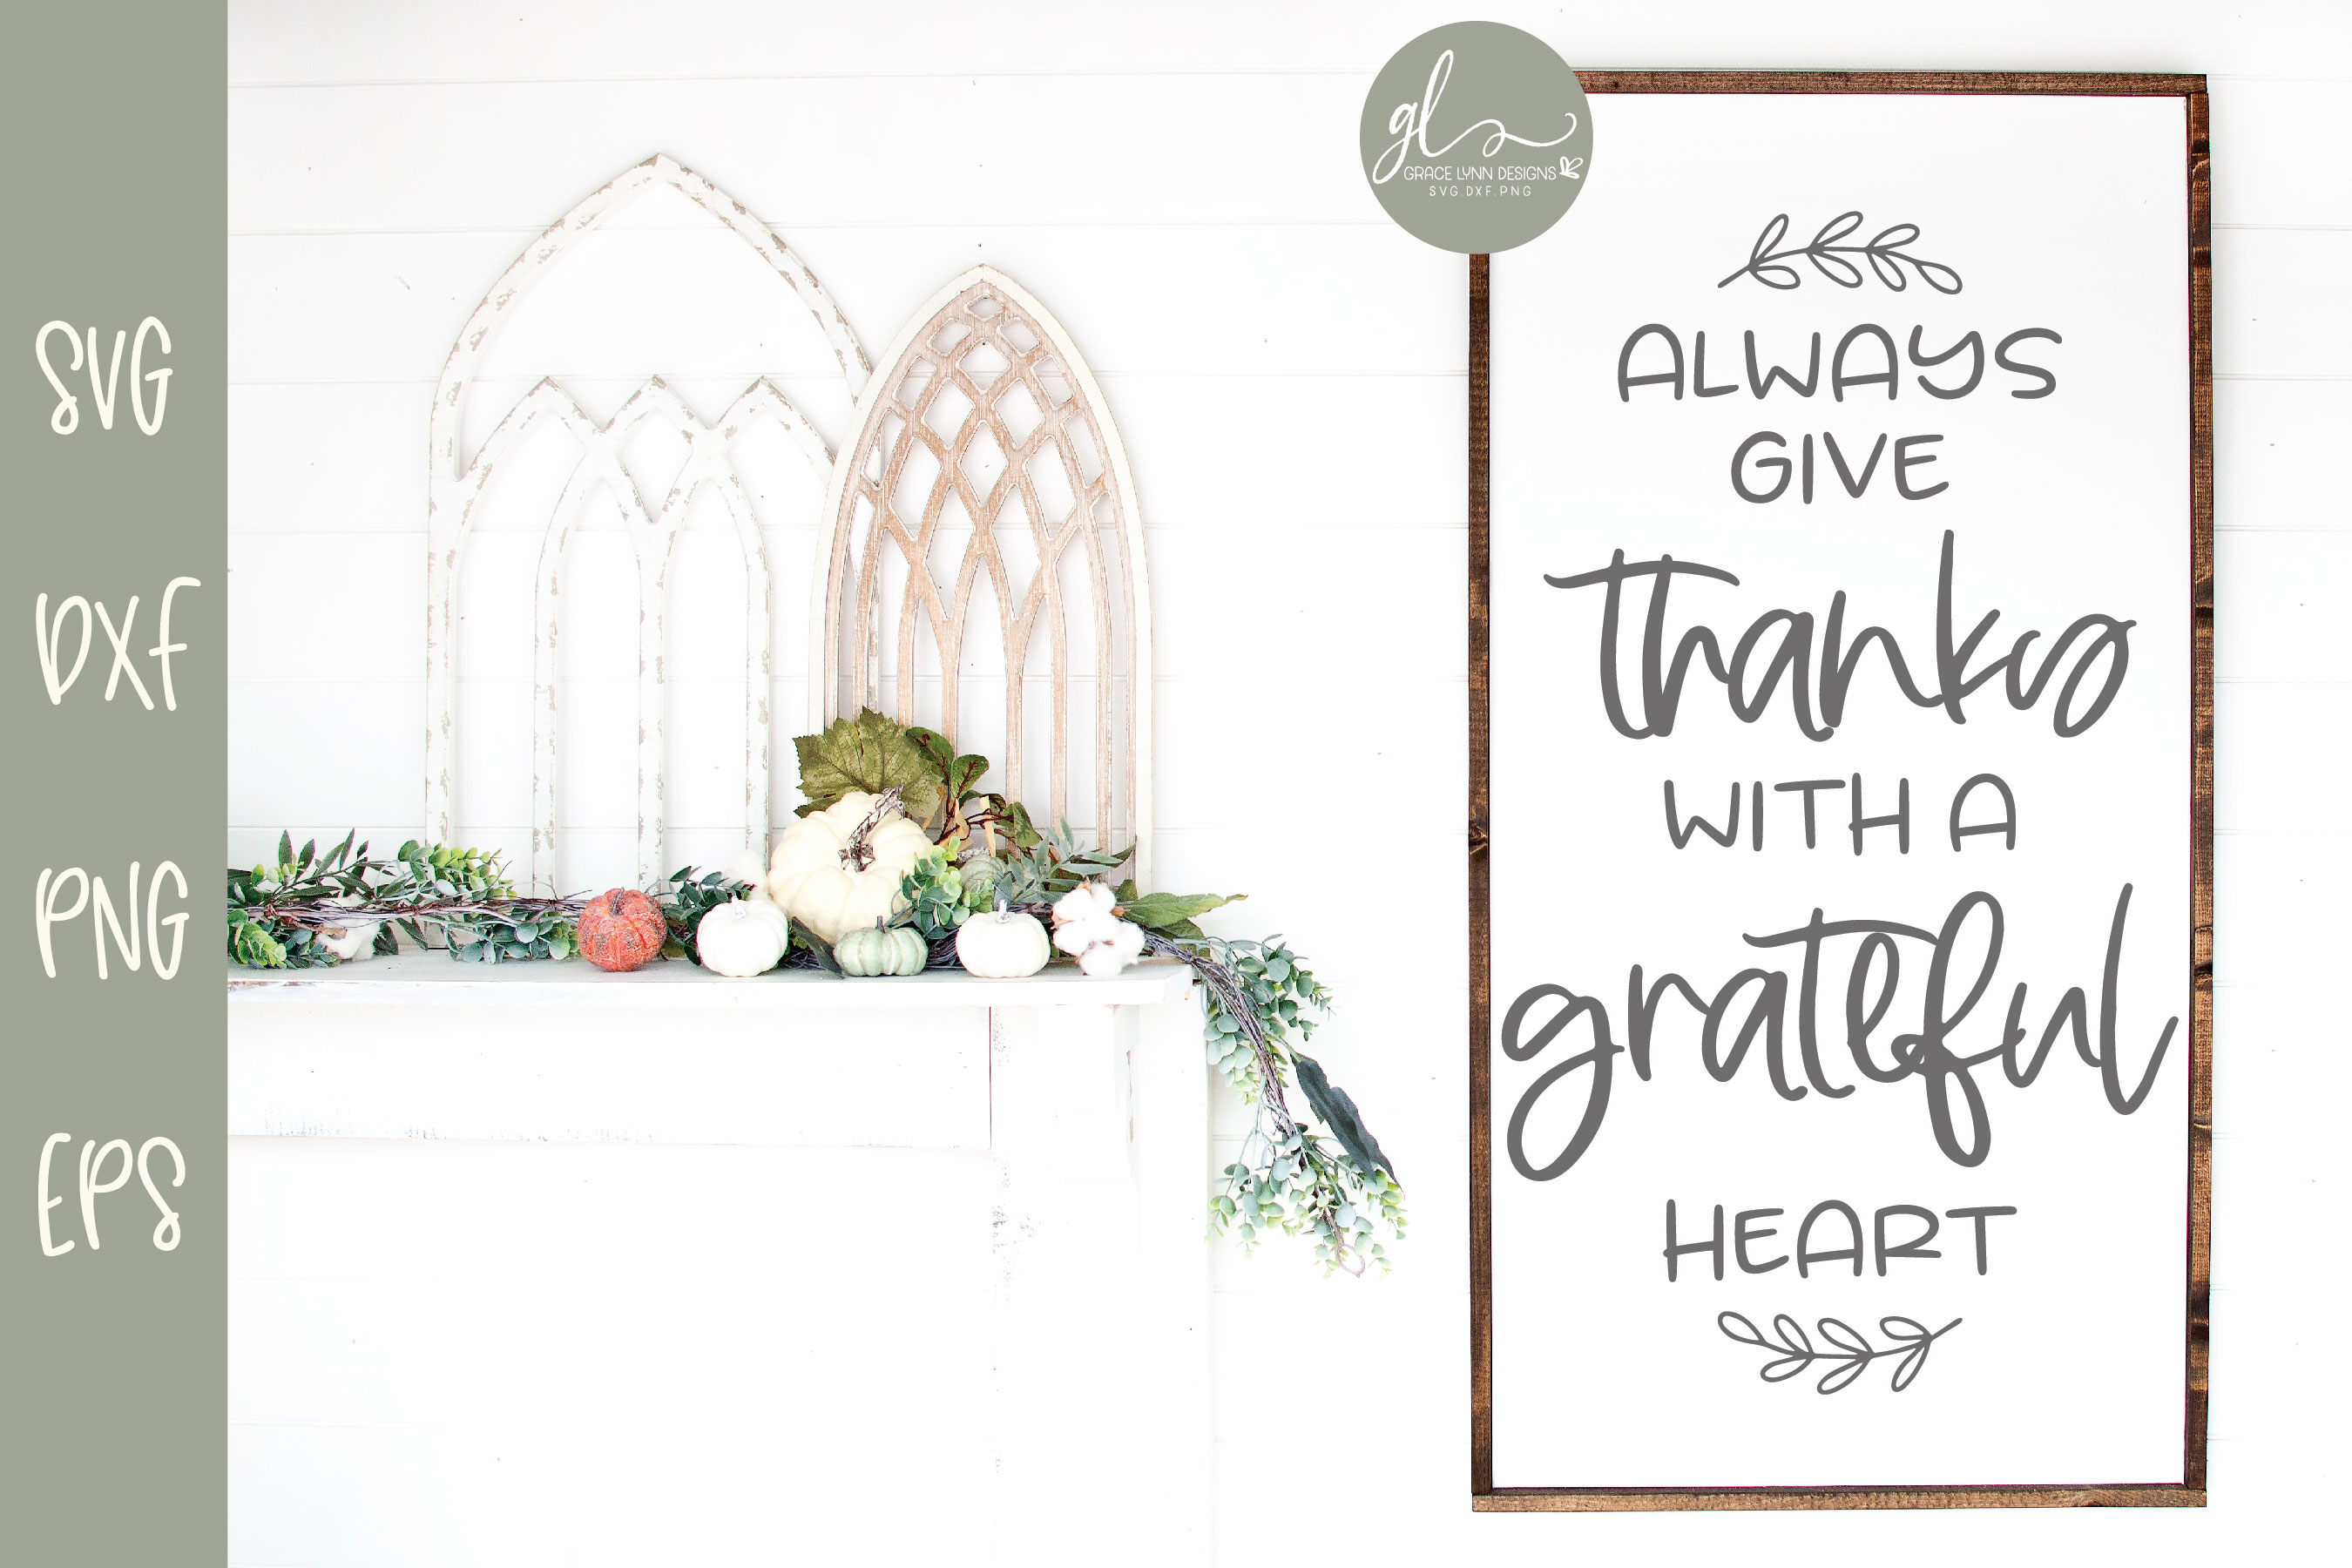 Always Give Thanks With A Grateful Heart - SVG example image 1